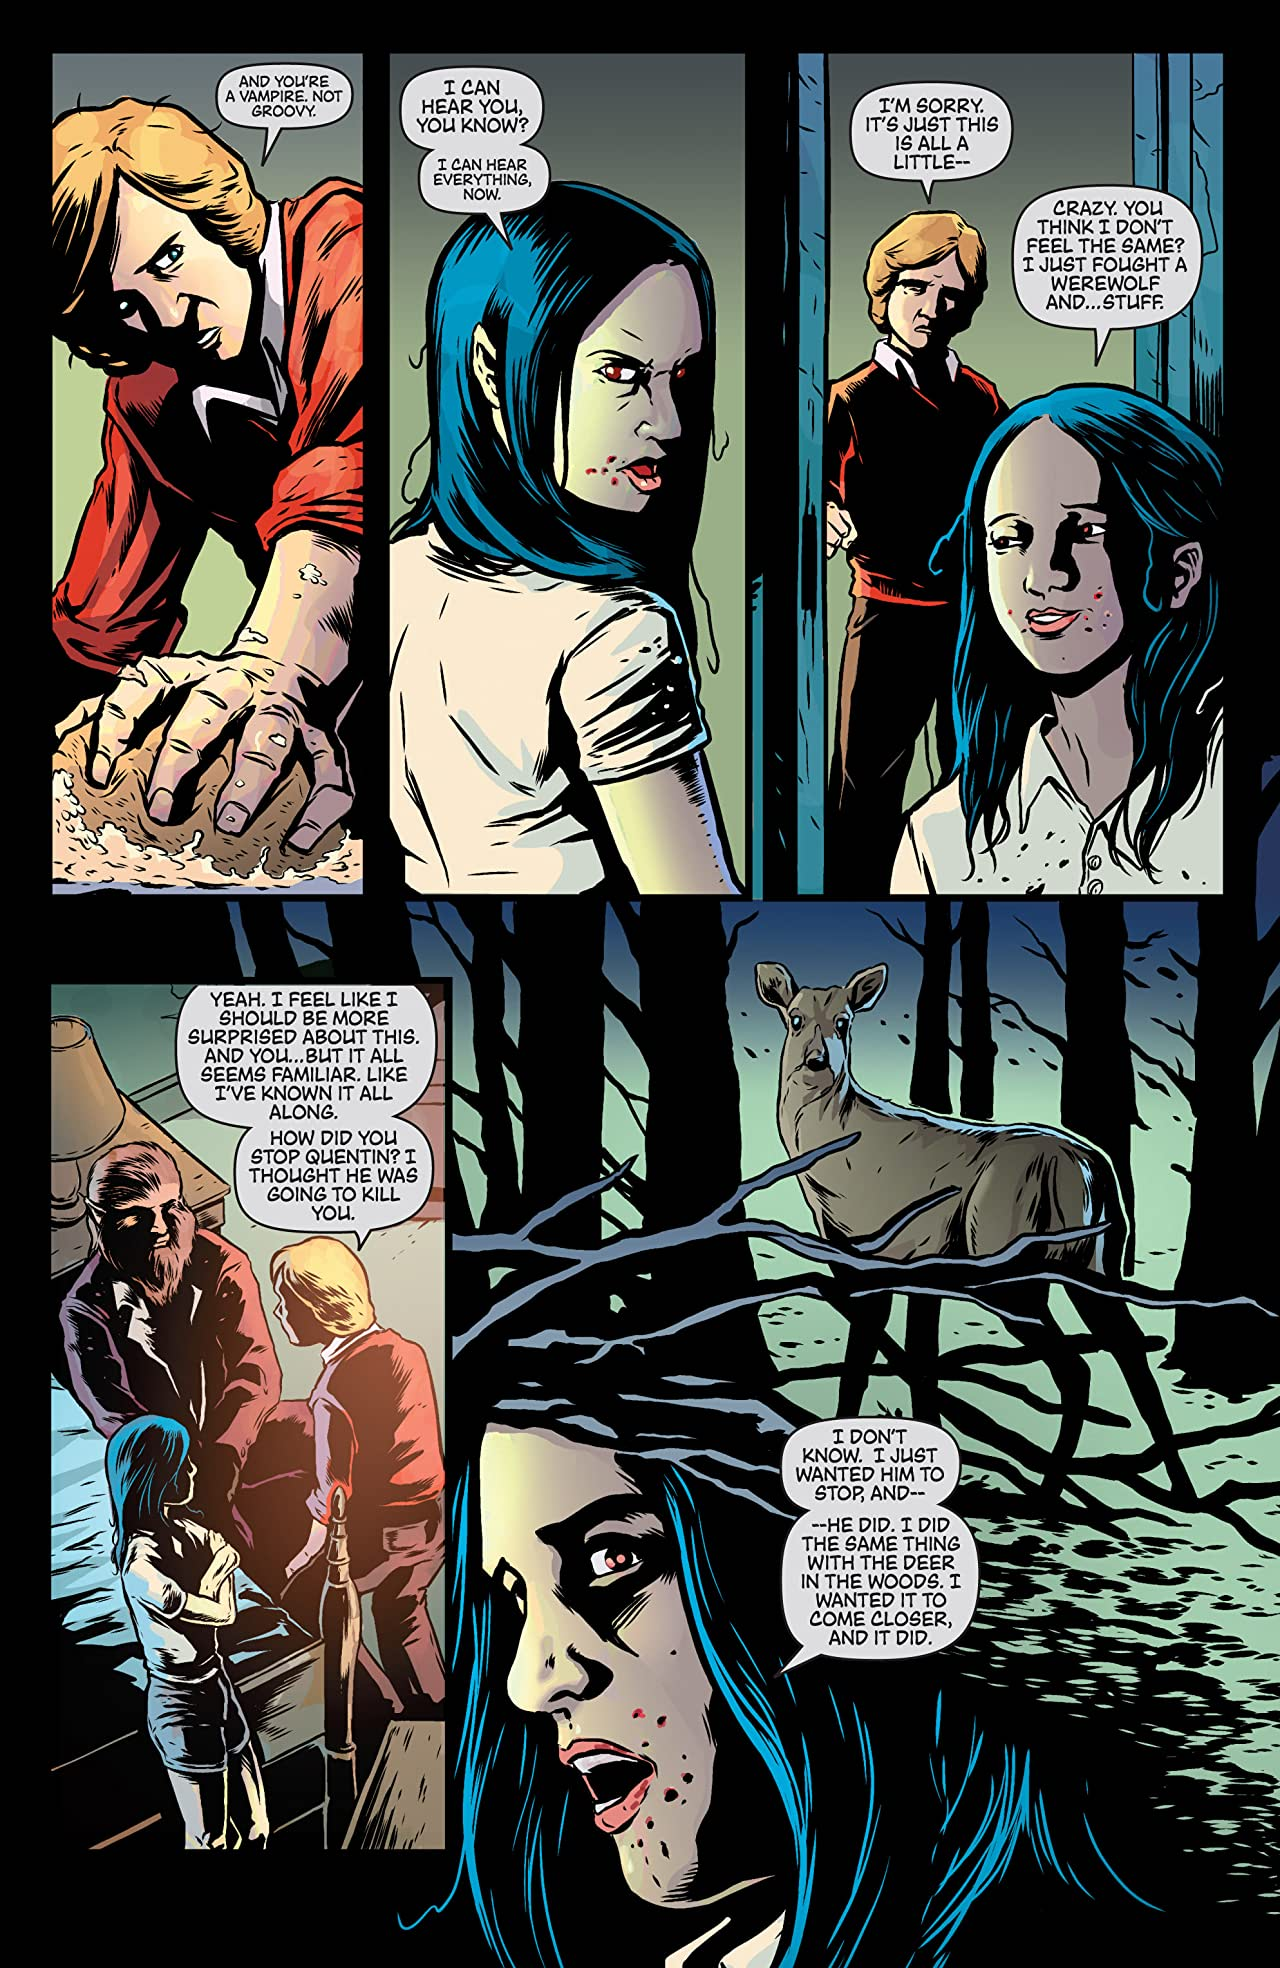 Dark Shadows (Ongoing) #13